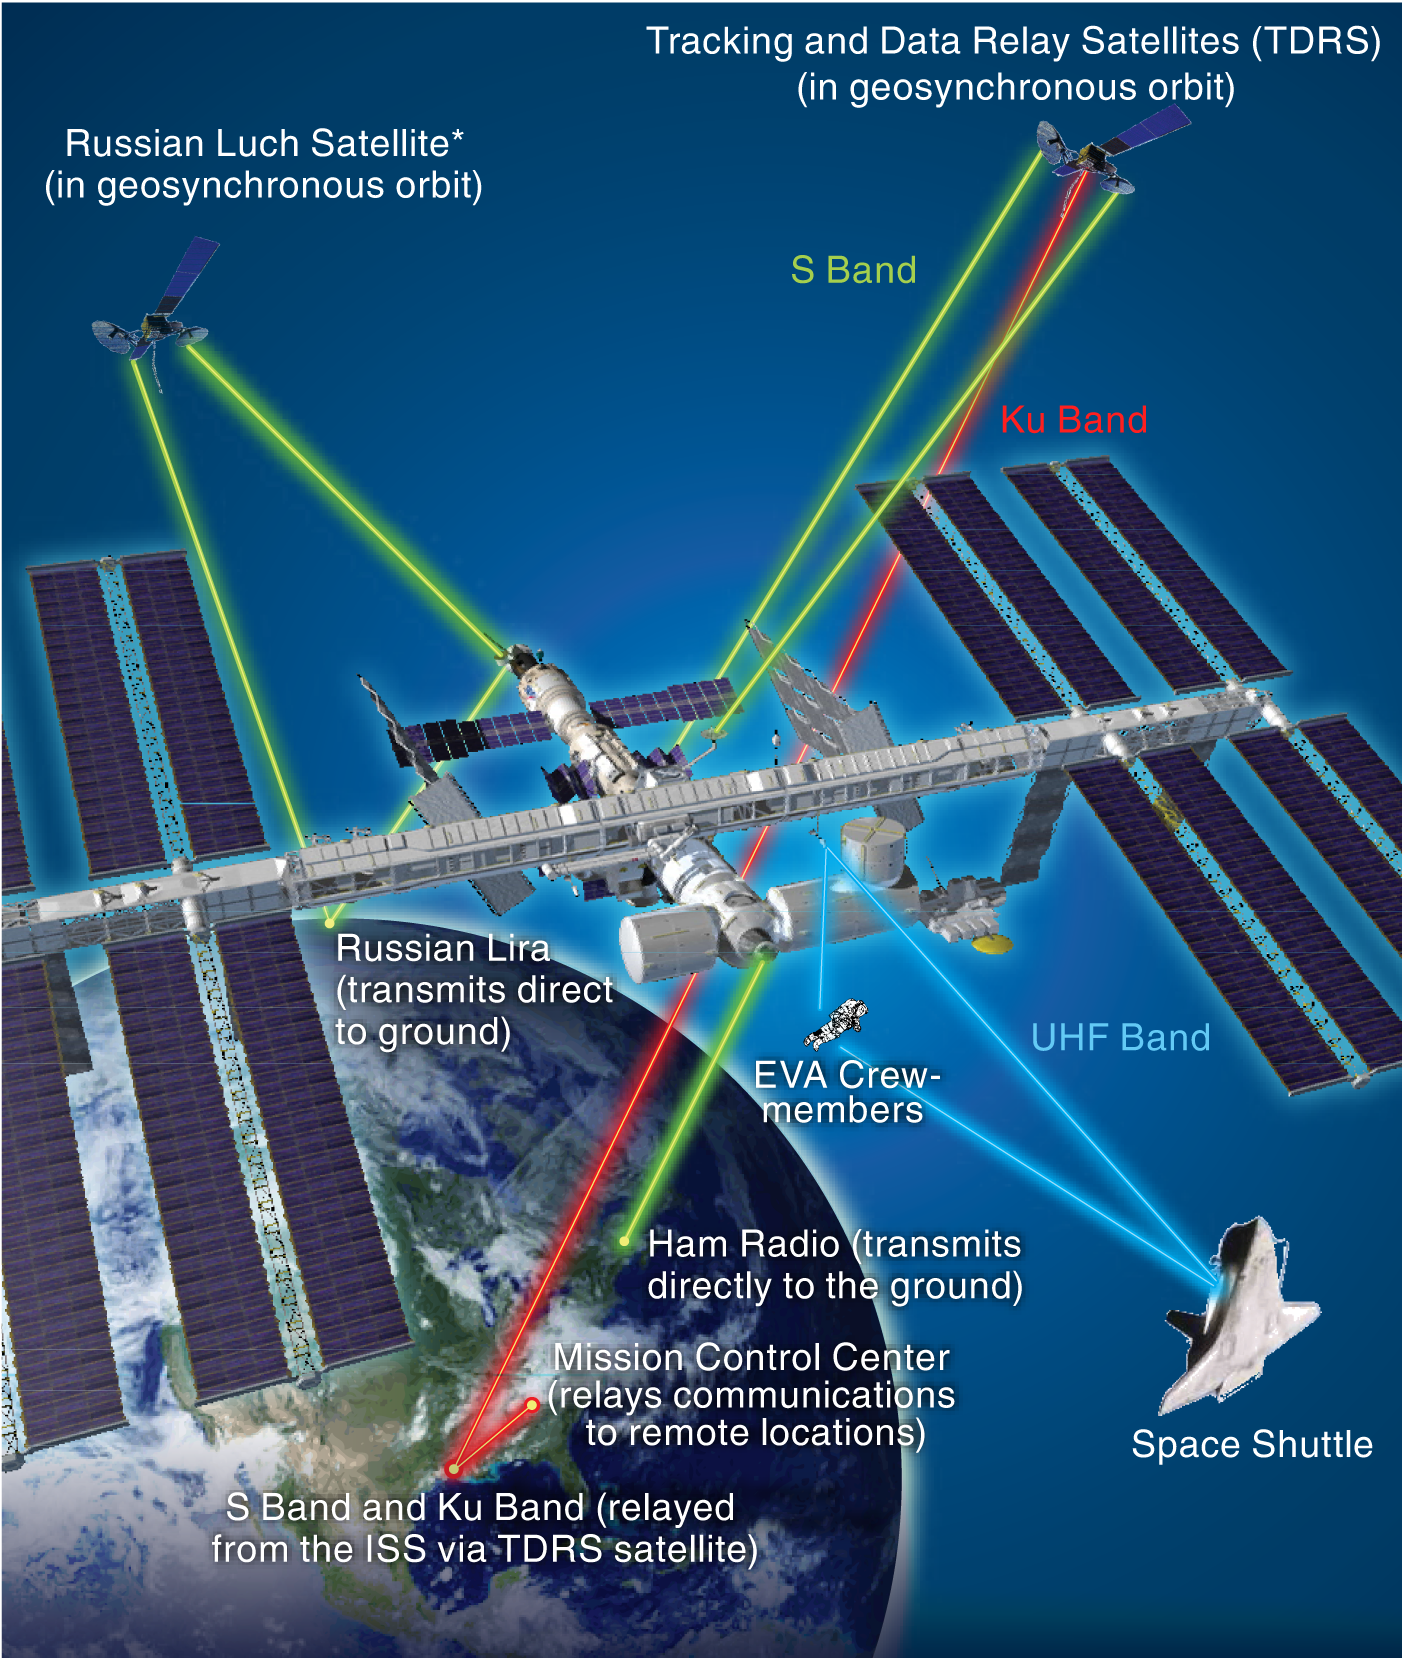 Diagram showing communications links between the ISS and other elements. See adjacent text for details.